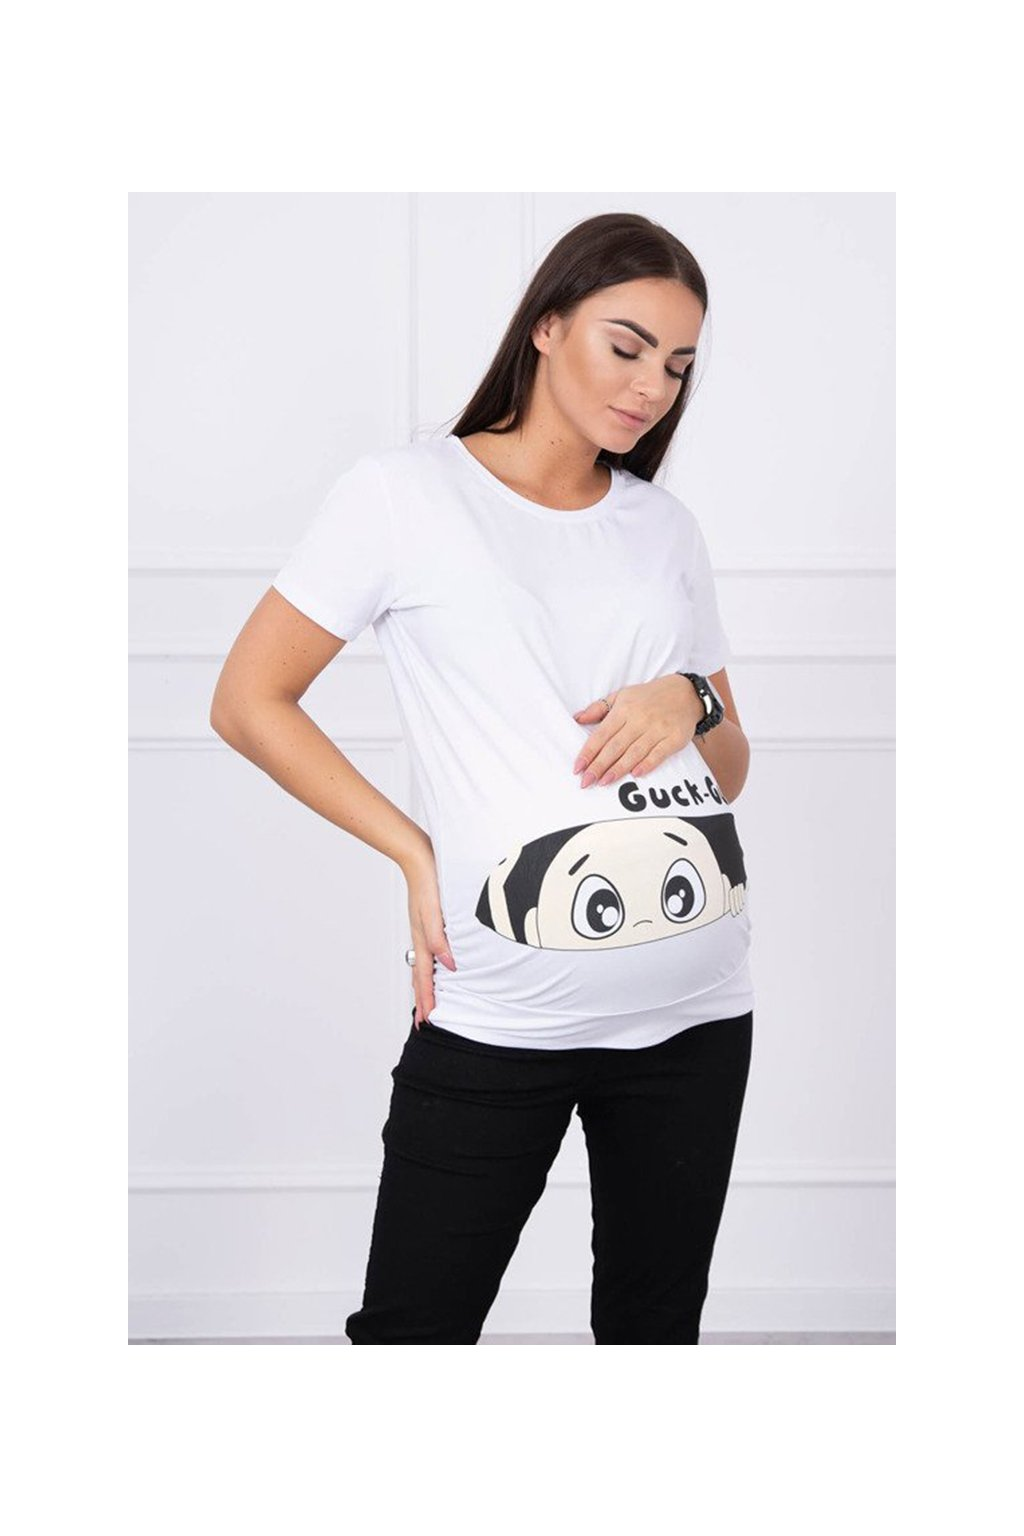 eng pm Maternity blouse Guck white 14247 1